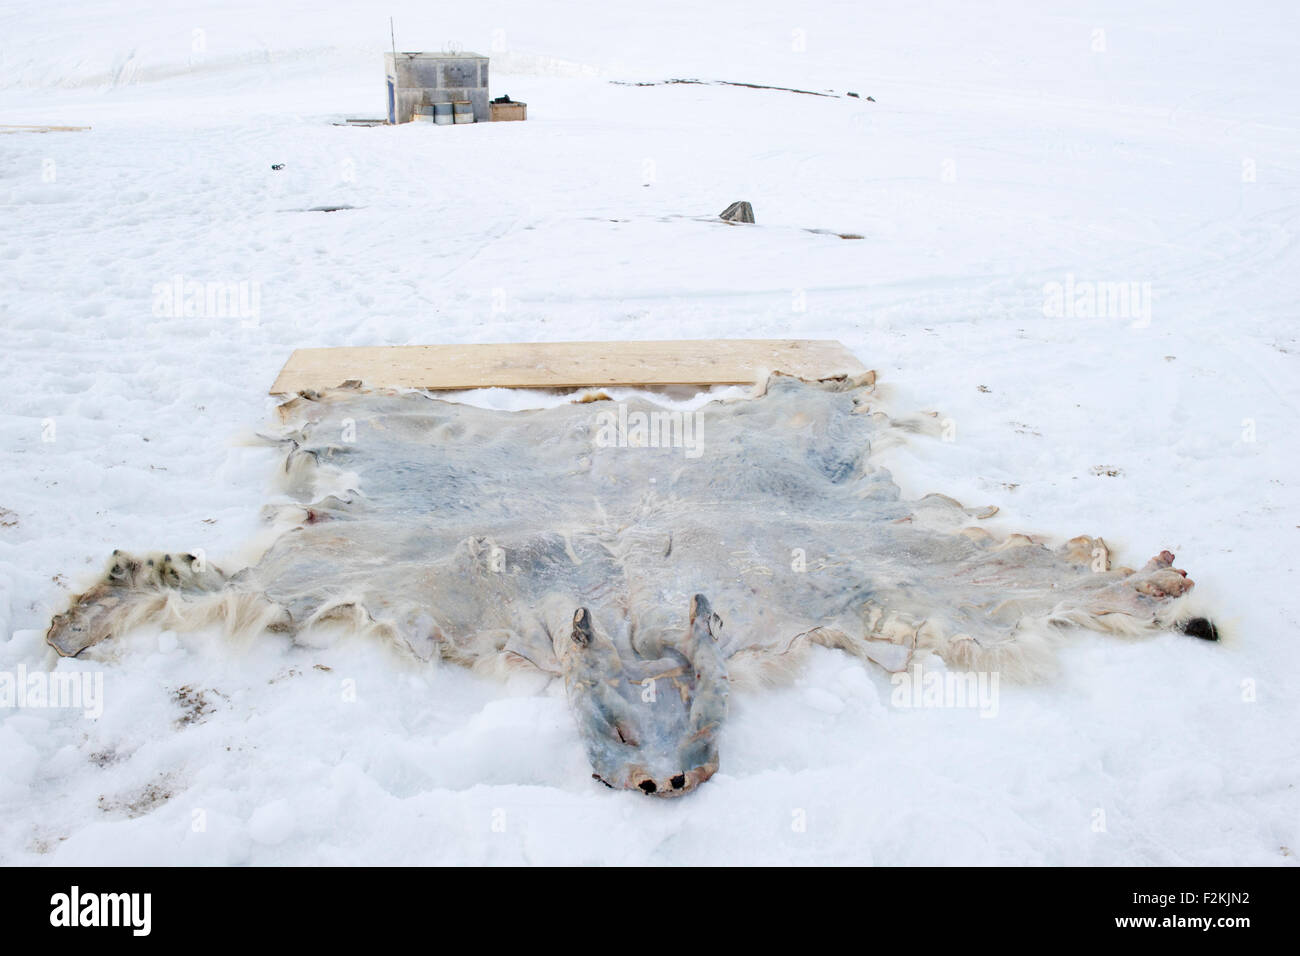 Stretching Polar Bear (Ursus maritimes) hide, fur, drying in the snow after hunt, Baffin bay, Nunavut, Canada. - Stock Image